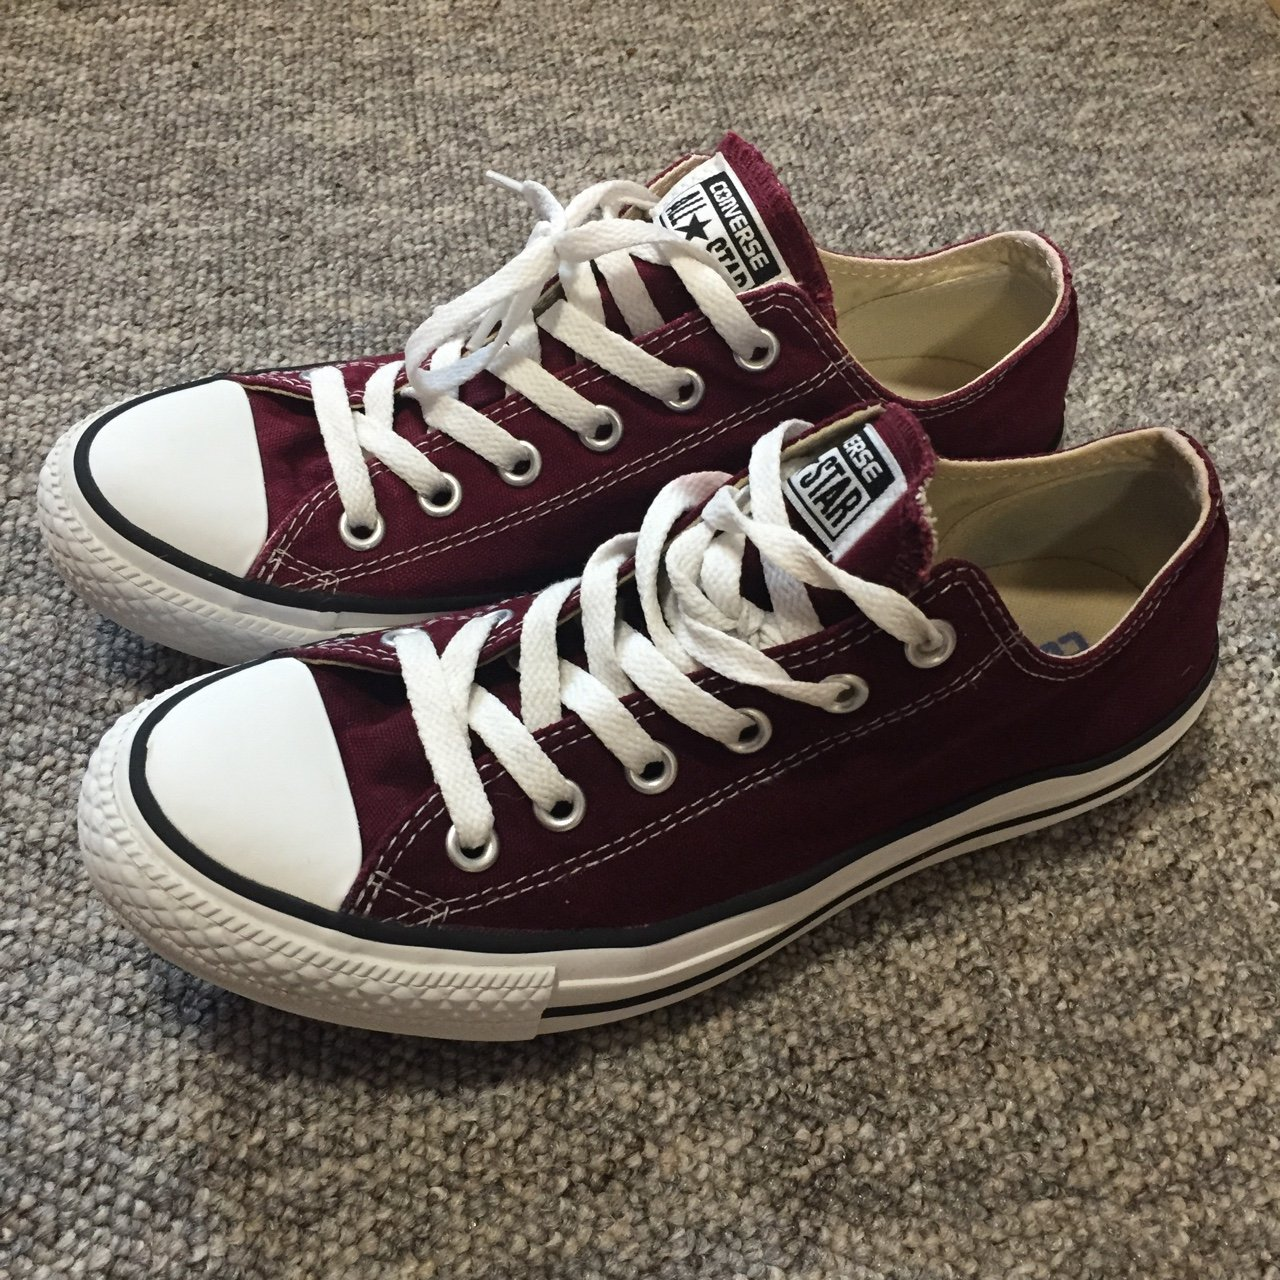 8380cfa78d9 Burgundy red low top Converse size 7. Only bit of wear is on - Depop